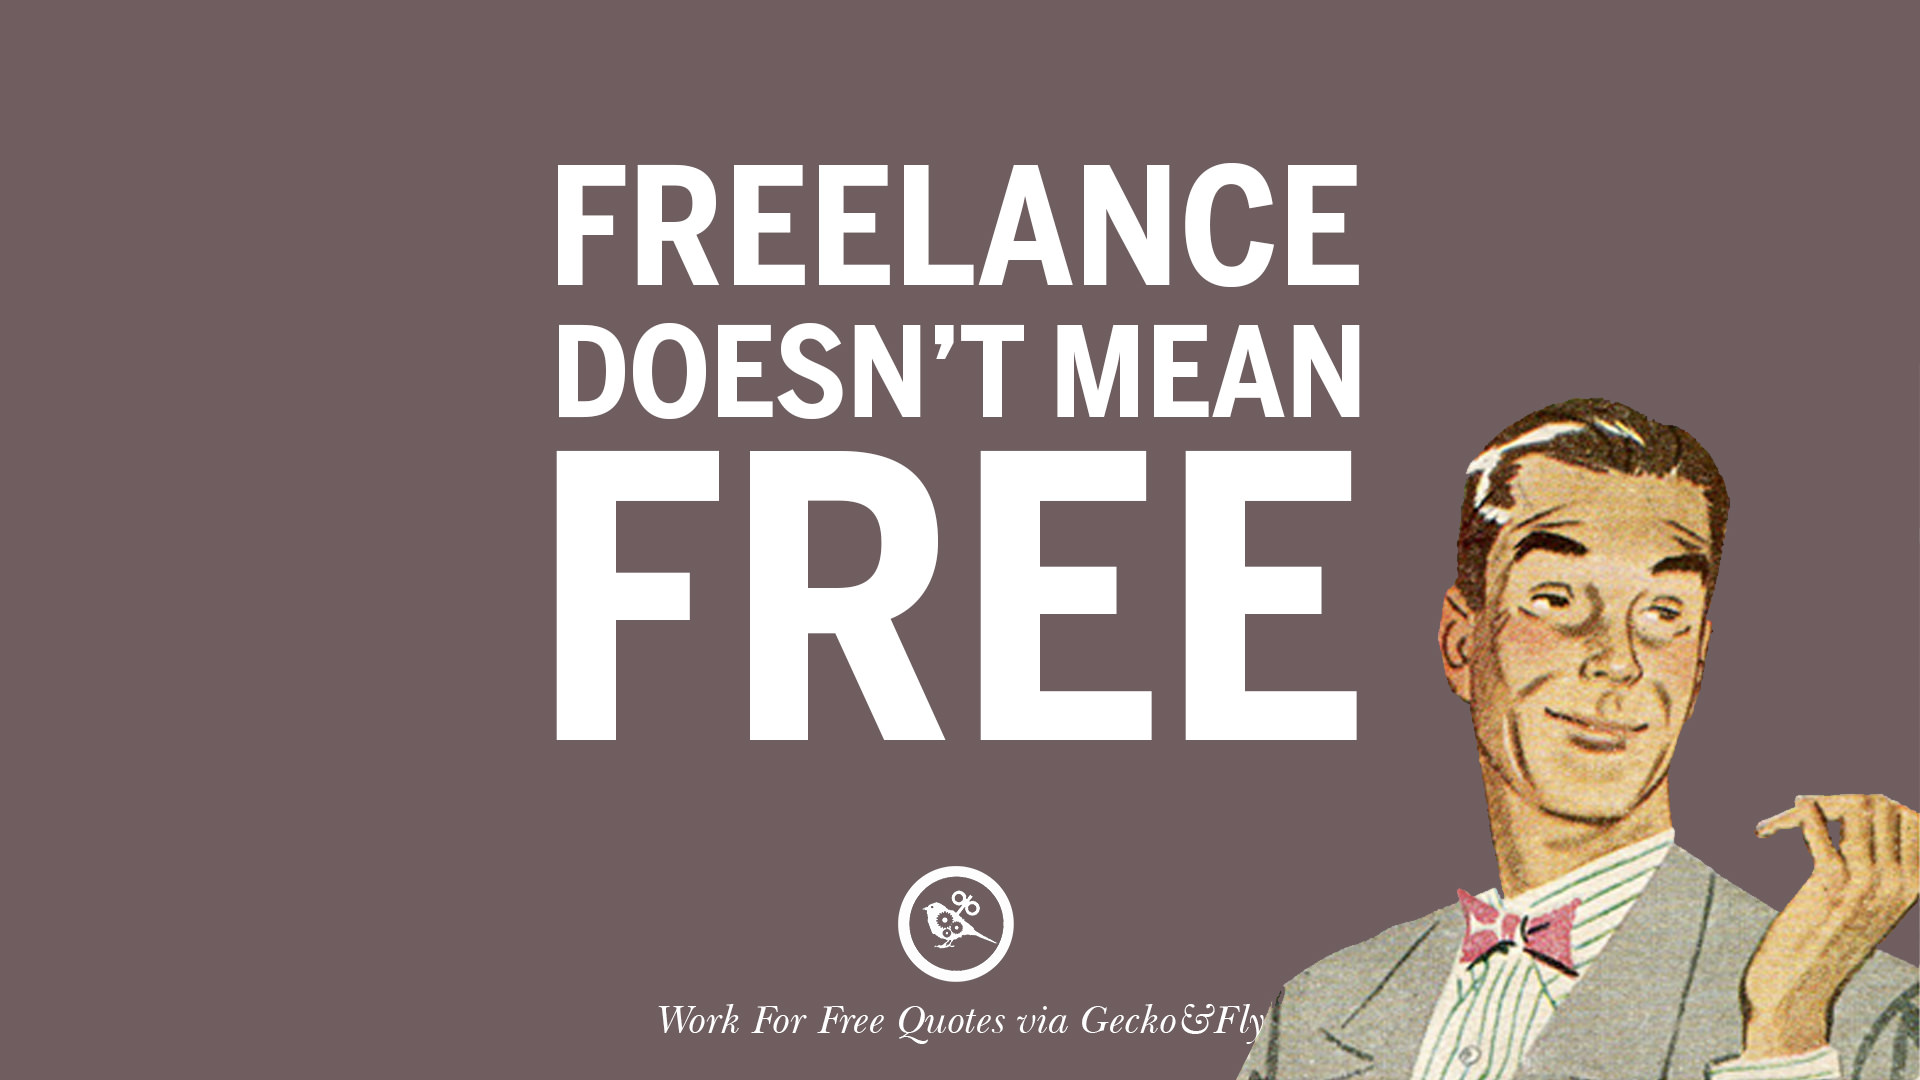 10 Sarcastic Work For Free Quotes For Freelancer Artist